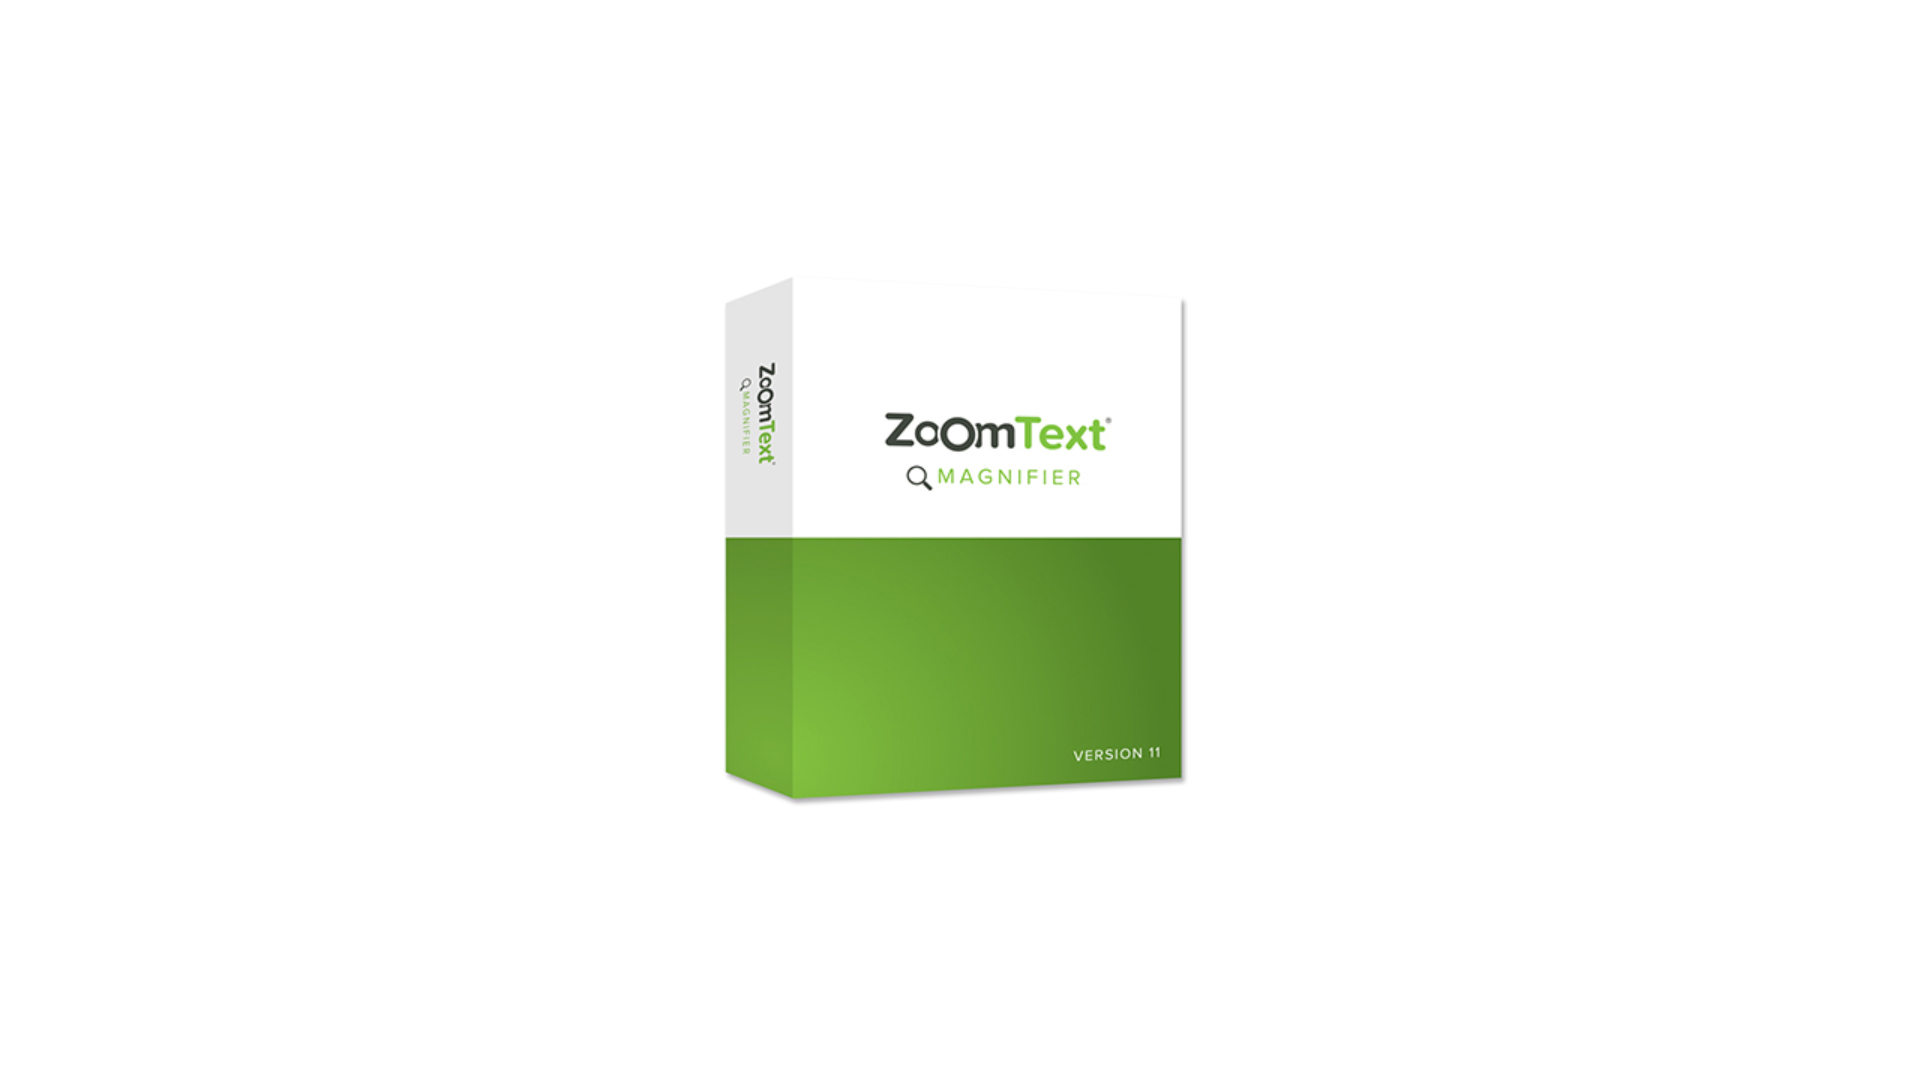 Picture of ZoomText Magnifier Box.